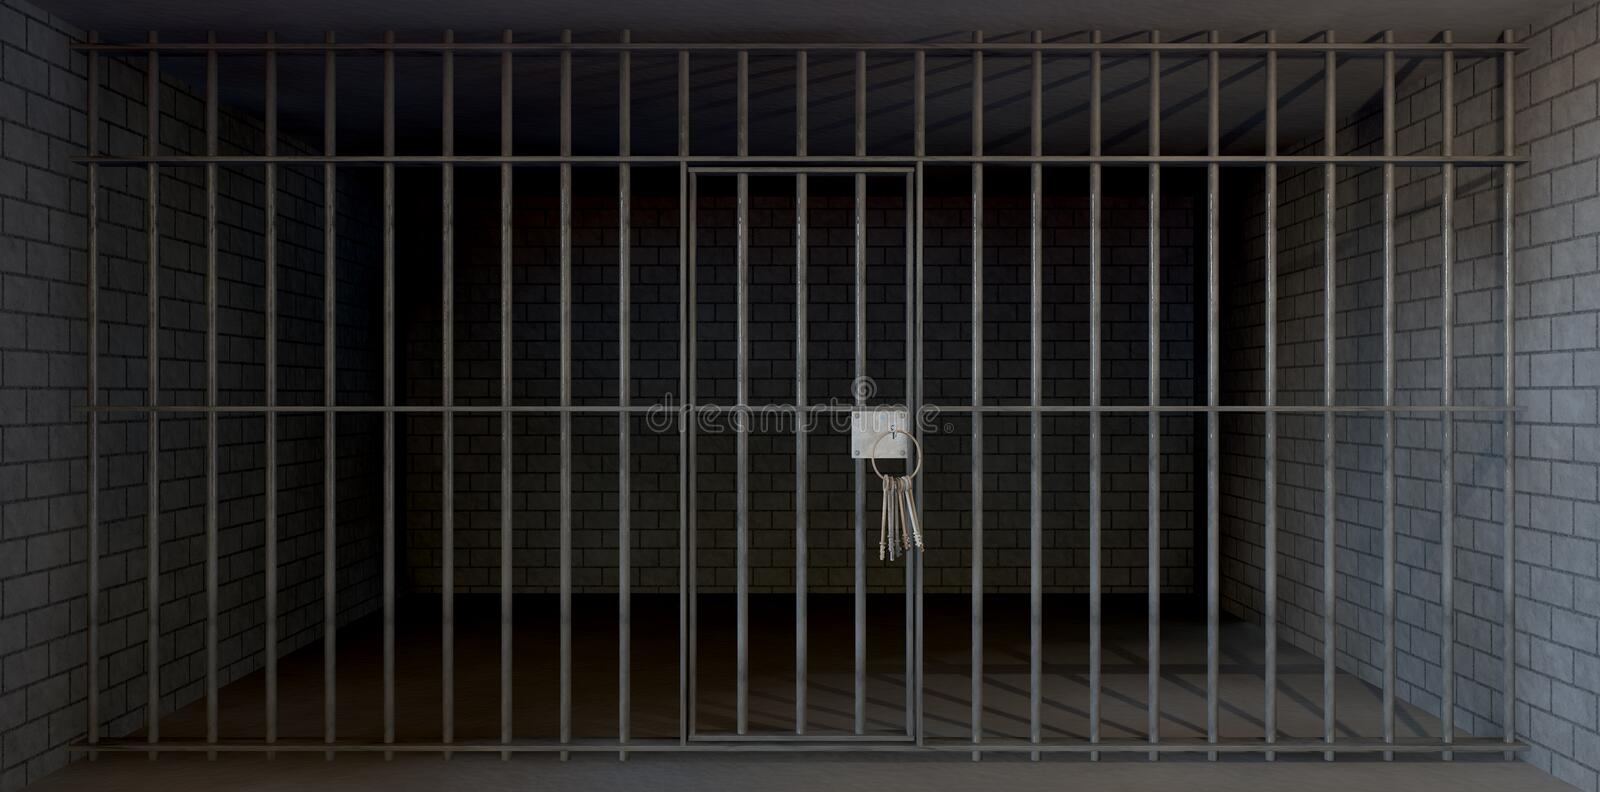 Jail Cell Full View With Keys vector illustration